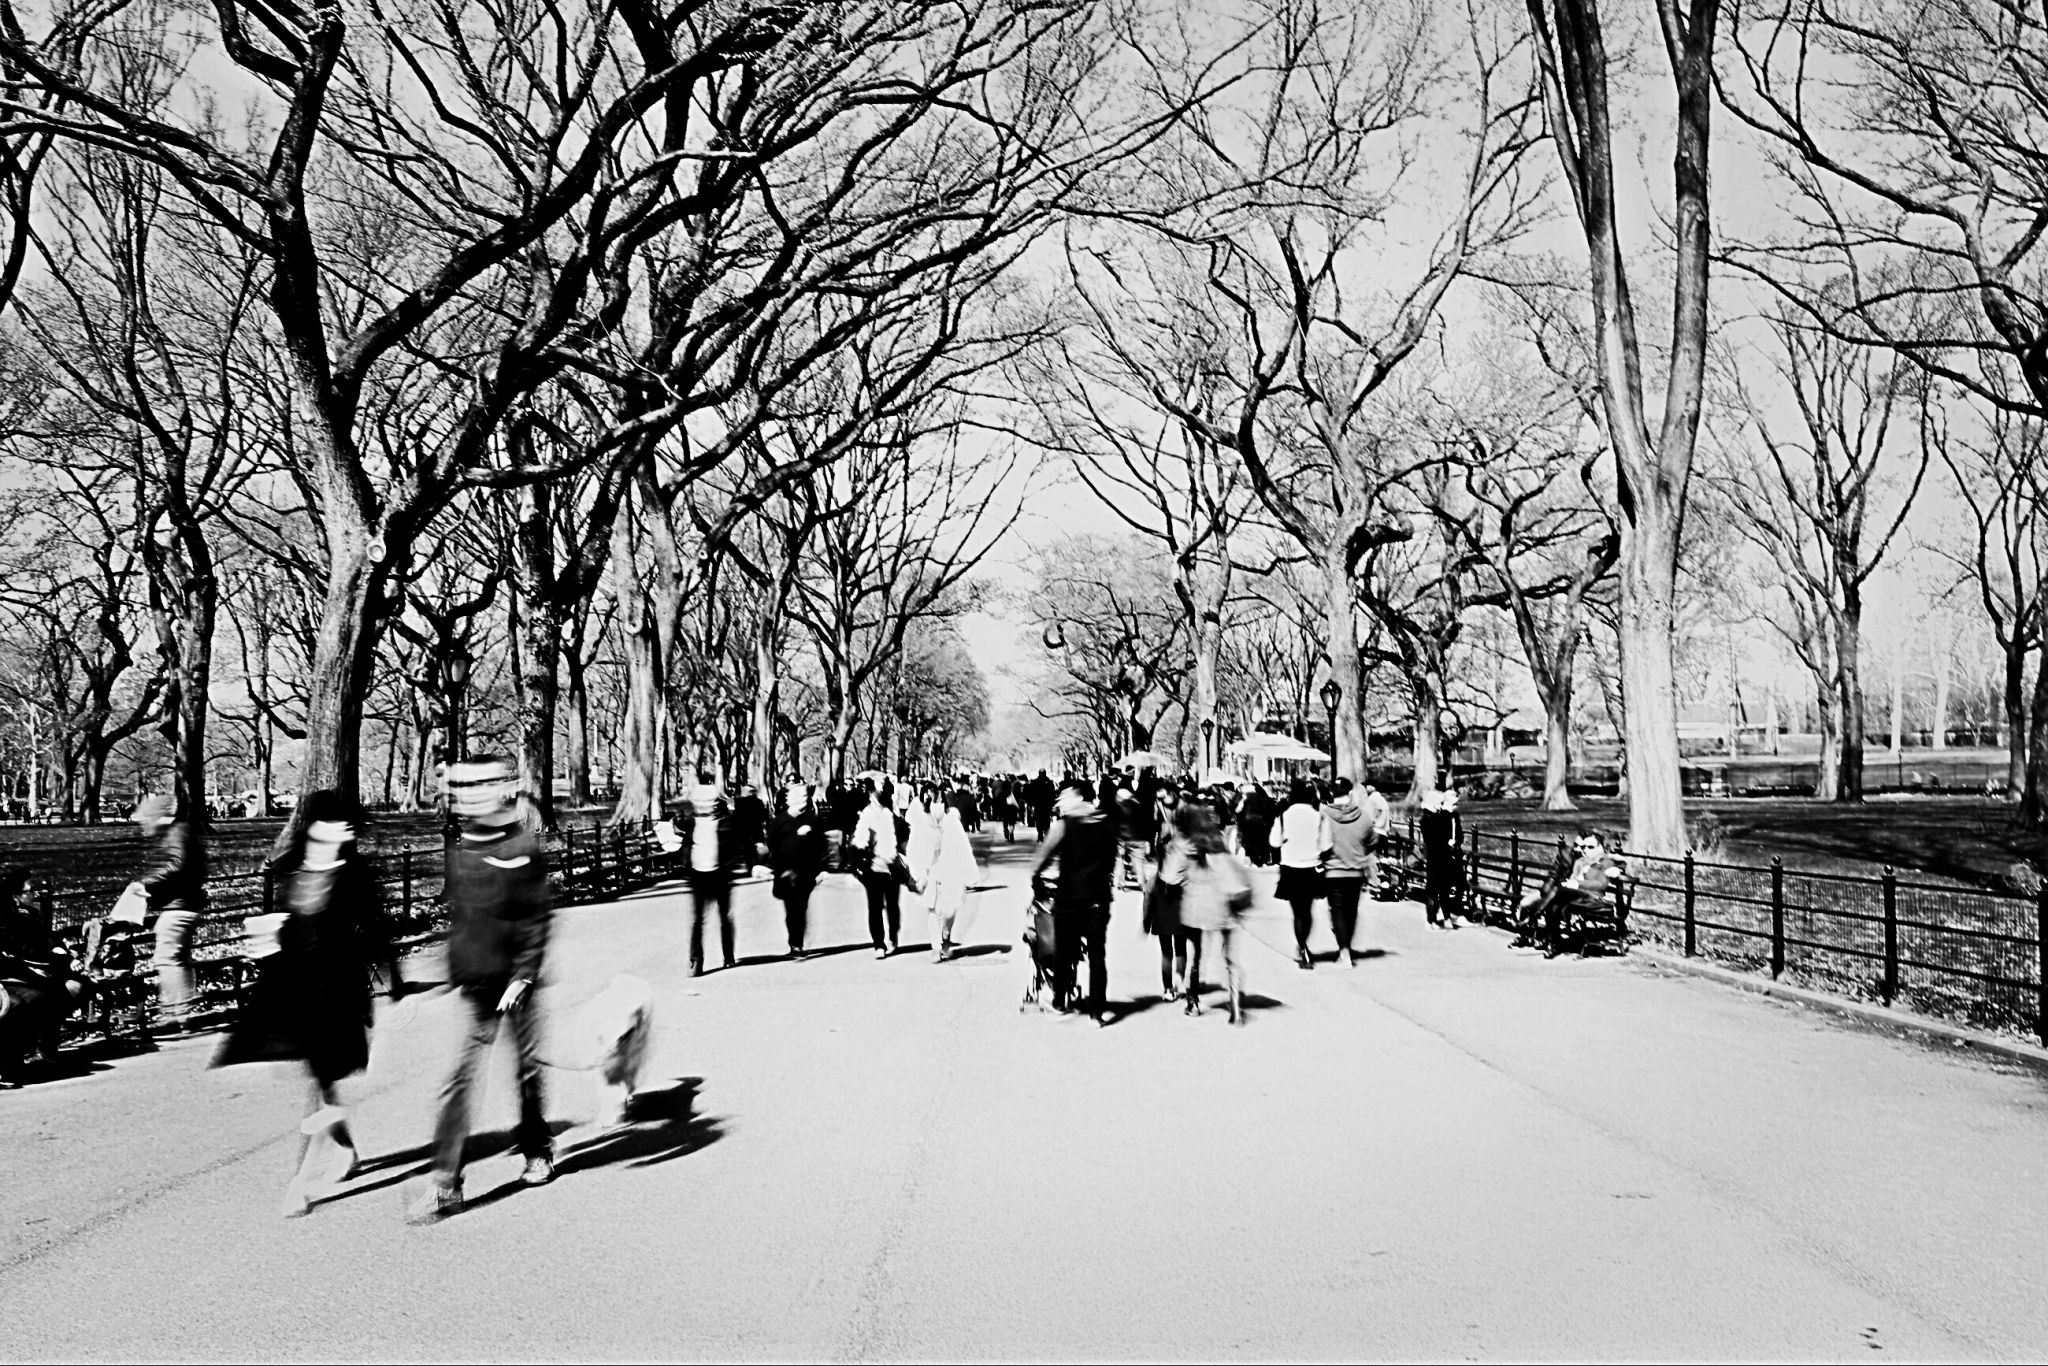 The Mall at Central Park, USA